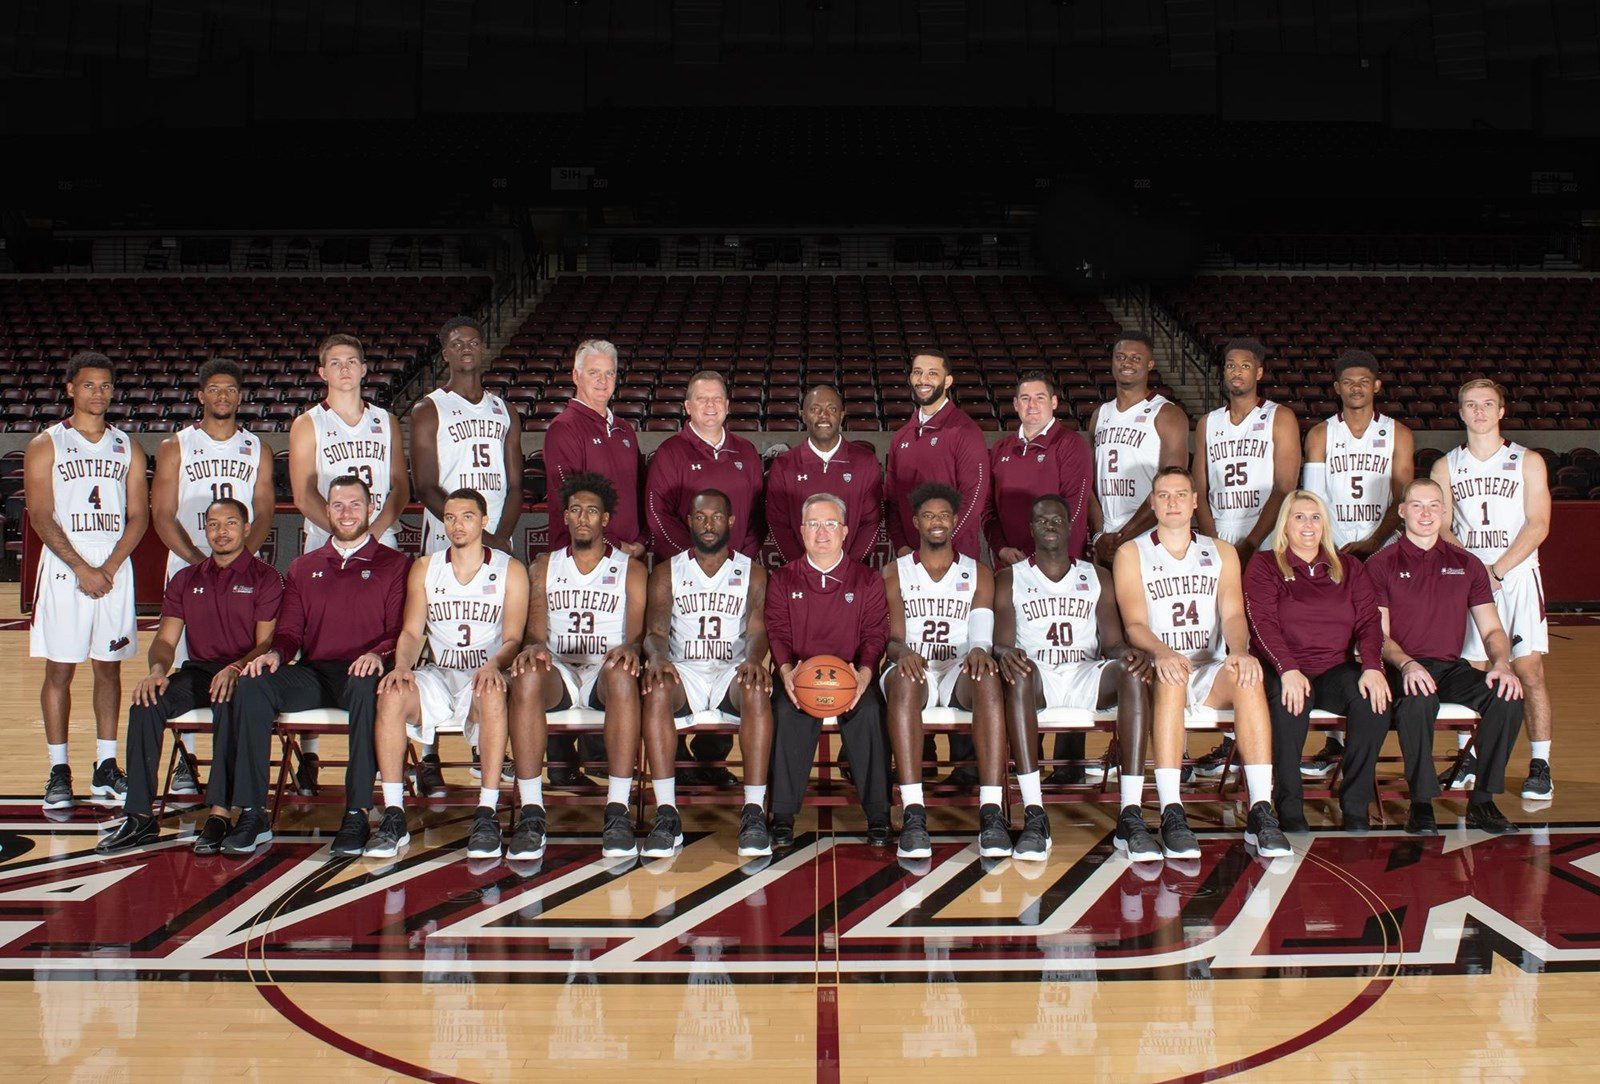 2018-19 Men's Basketball Roster - Southern Illinois